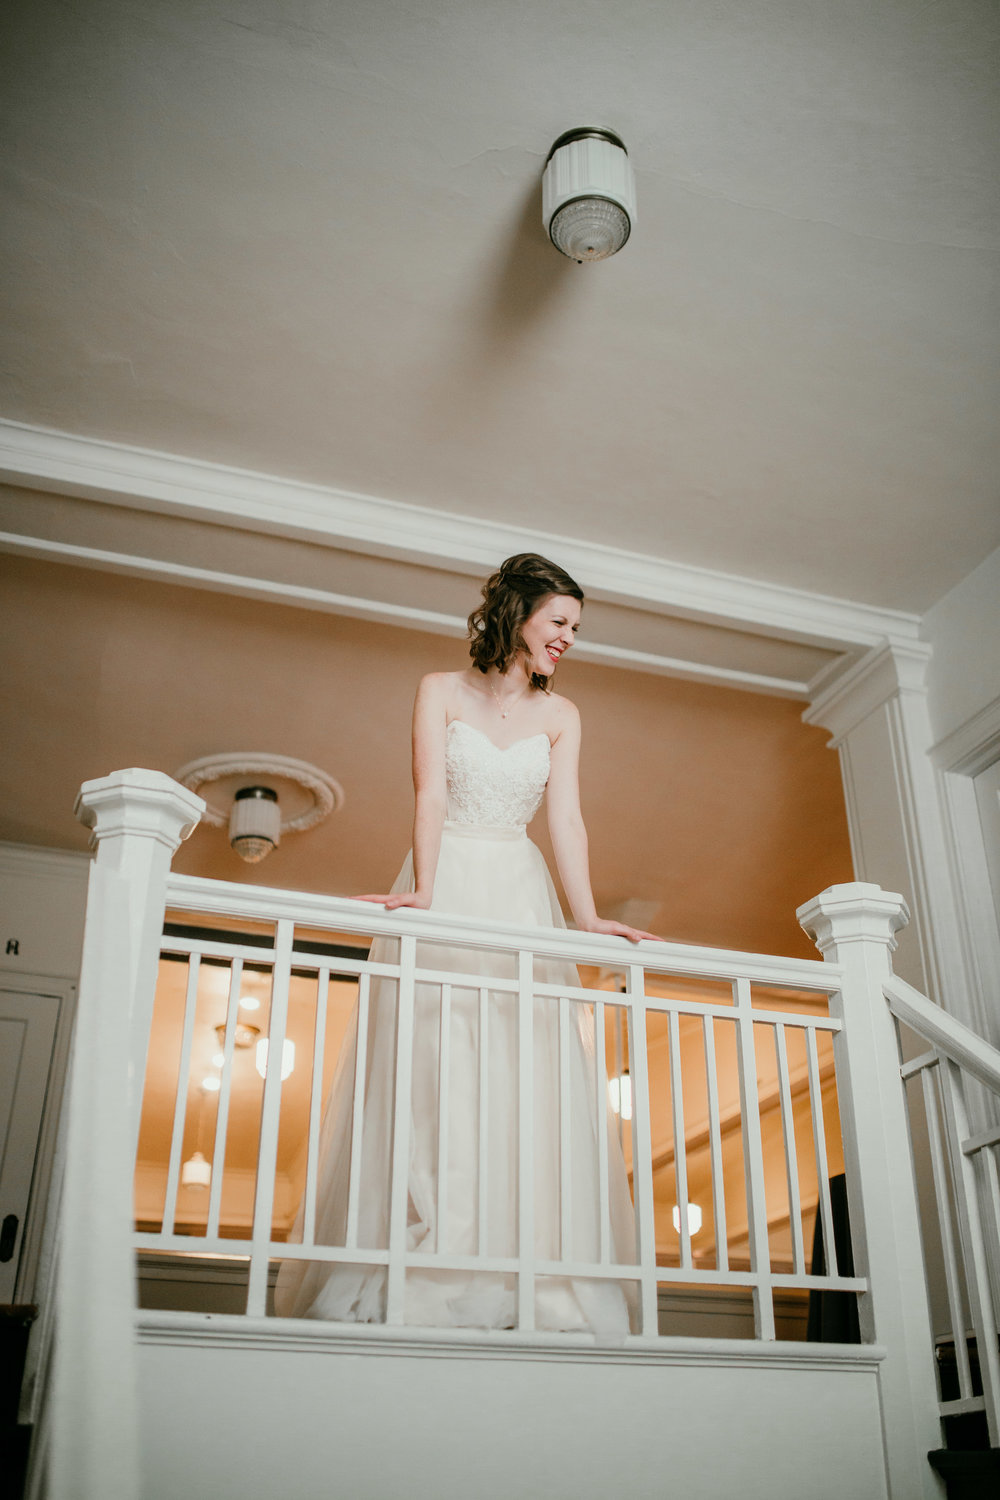 Bridal portrait on the stairwell | Shelbie & Jospeh's Summer Love Story : Kansas City Wedding | Hanna Hill Photography